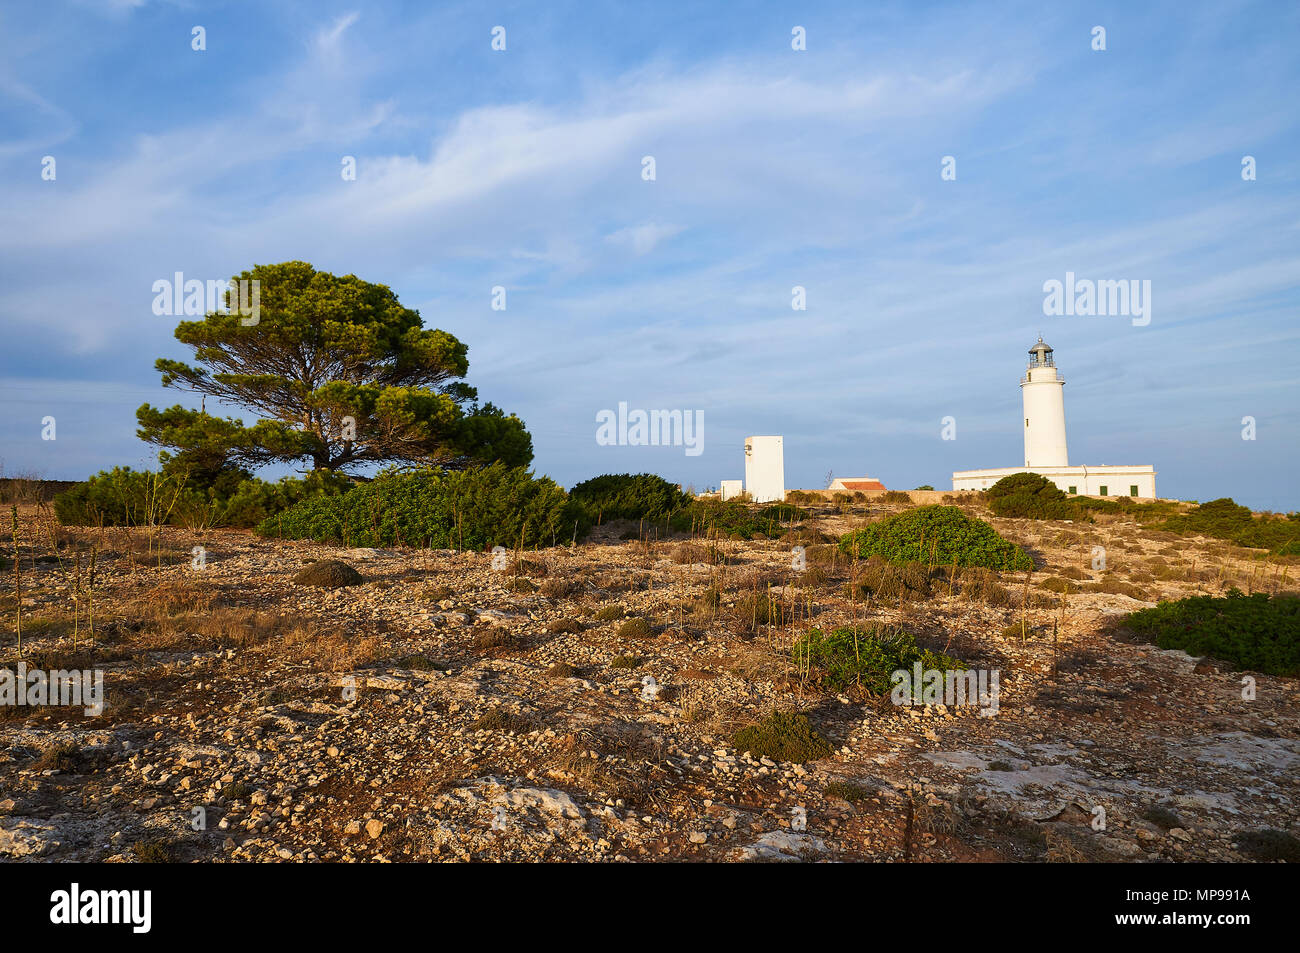 Scenic view of La Mola lighthouse and surroundings near El Pilar de la Mola town in Formentera (Balearic Islands, Spain) - Stock Image